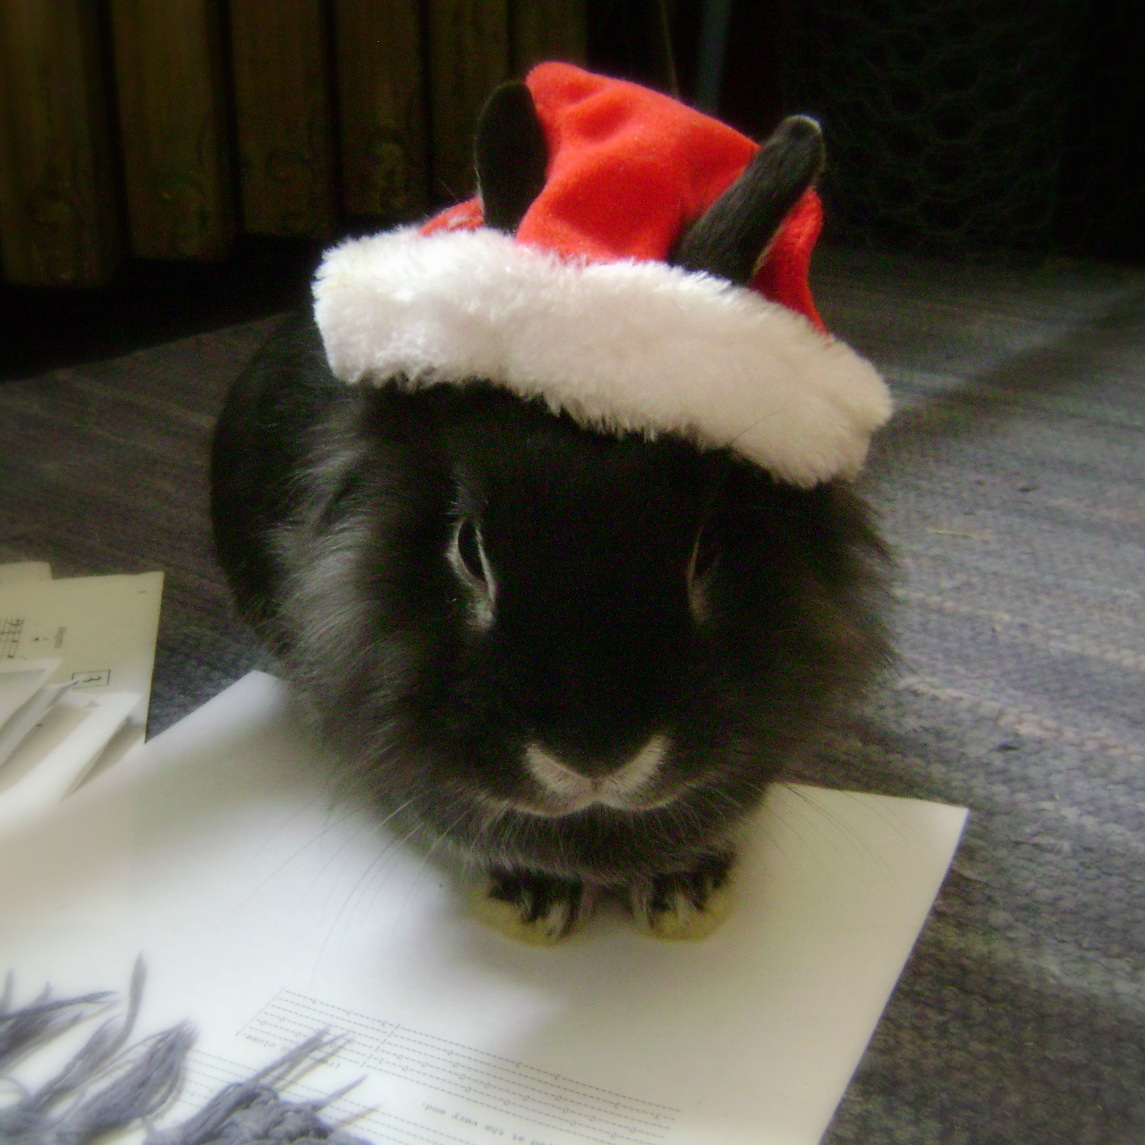 Santa Bunny Has Been Keeping Score of Who Has Given Him Treats, and Who Hasn't